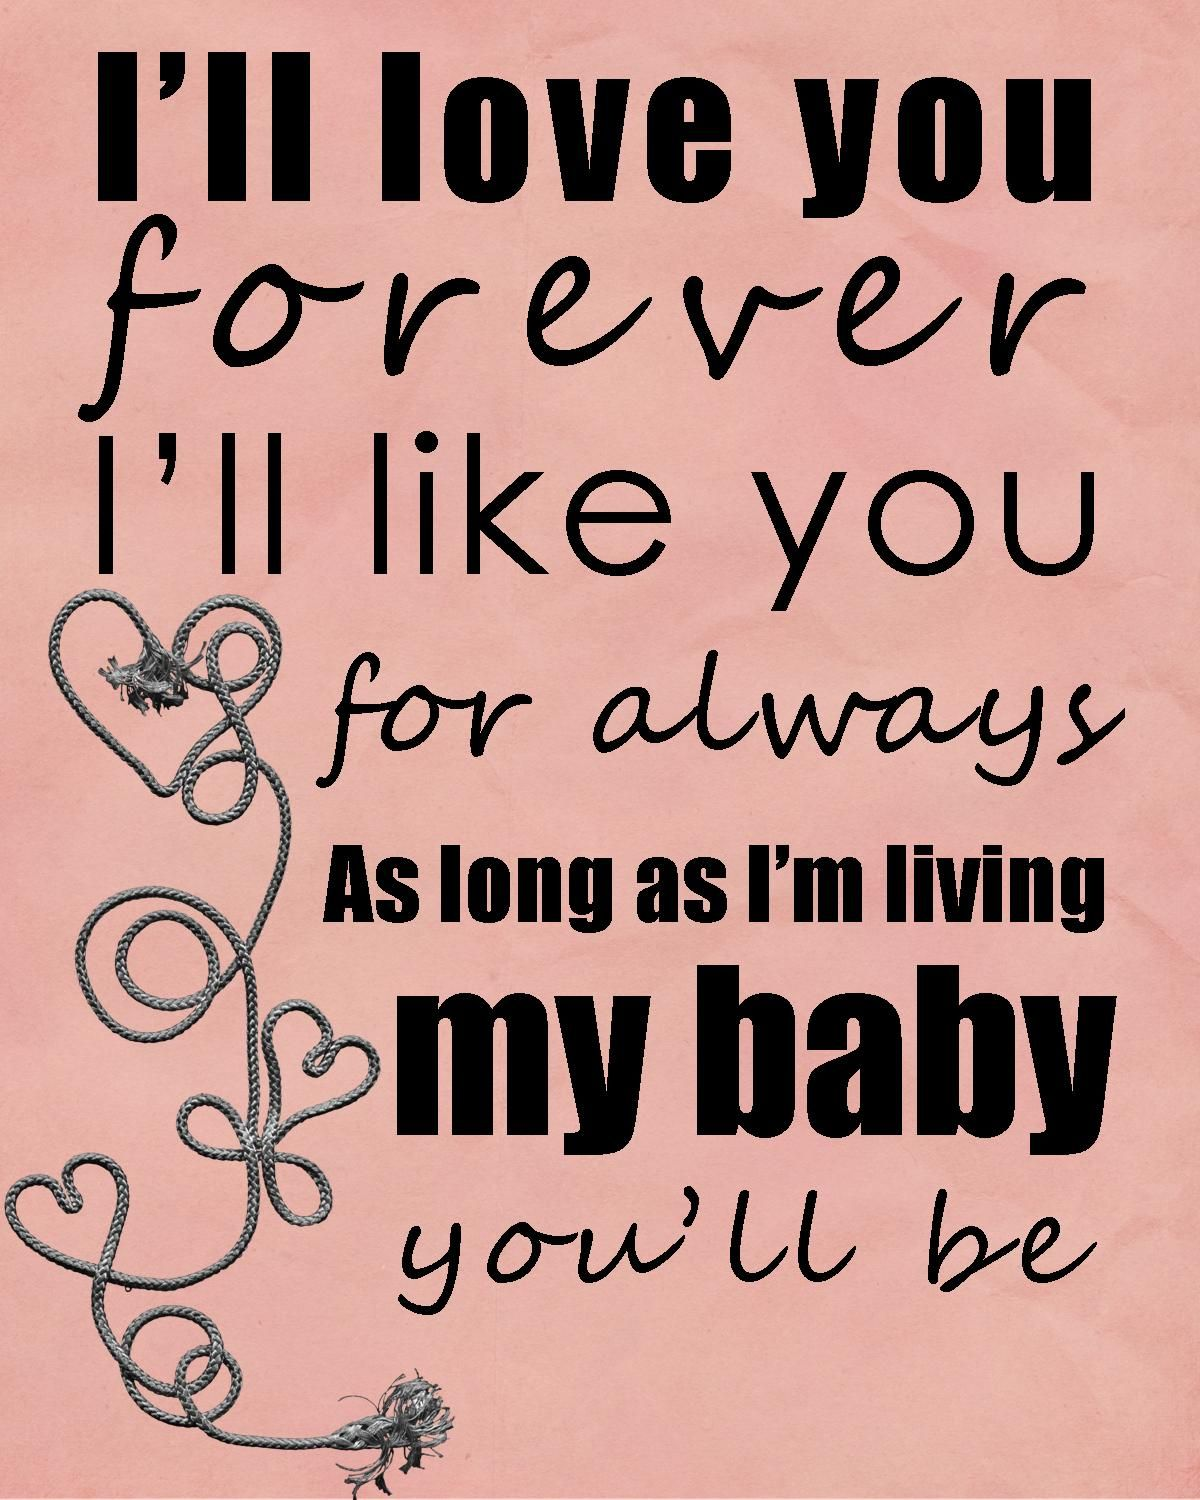 I Love You Forever Like You Always Baby Funny Health Quotes and Sayings